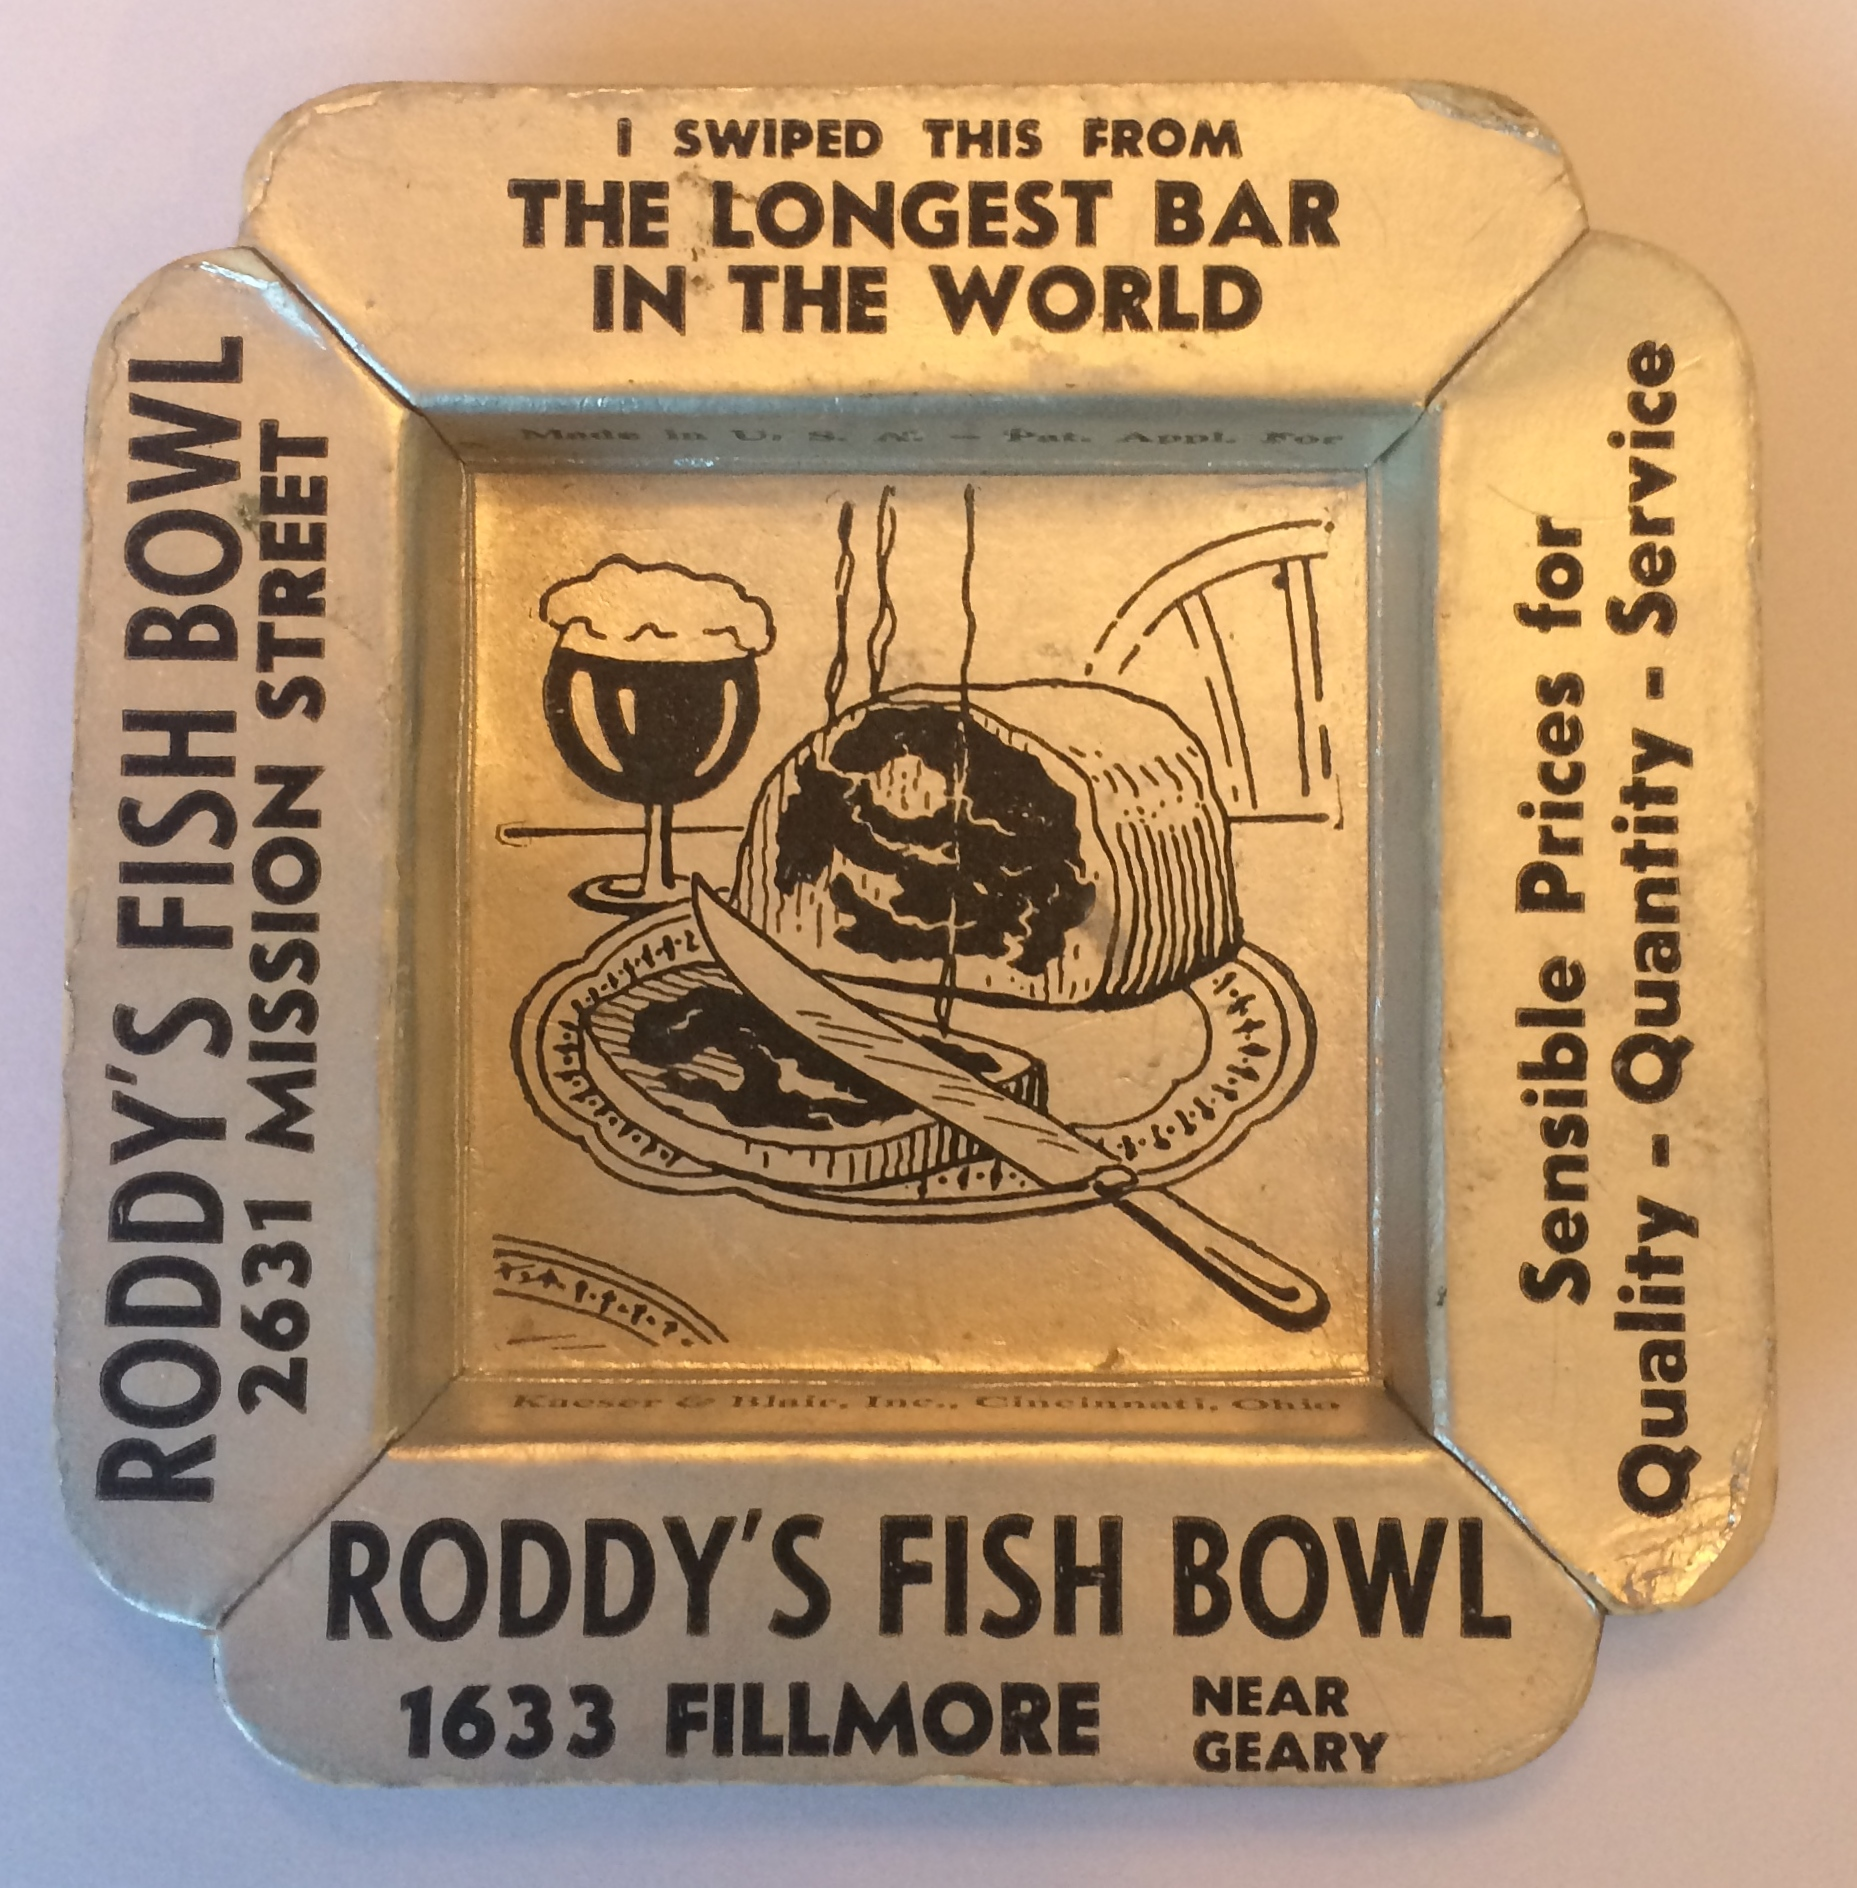 Roddy's Fish Bowl - 1633 Fillmore Street, San Francisco, California U.S.A. - date unknown